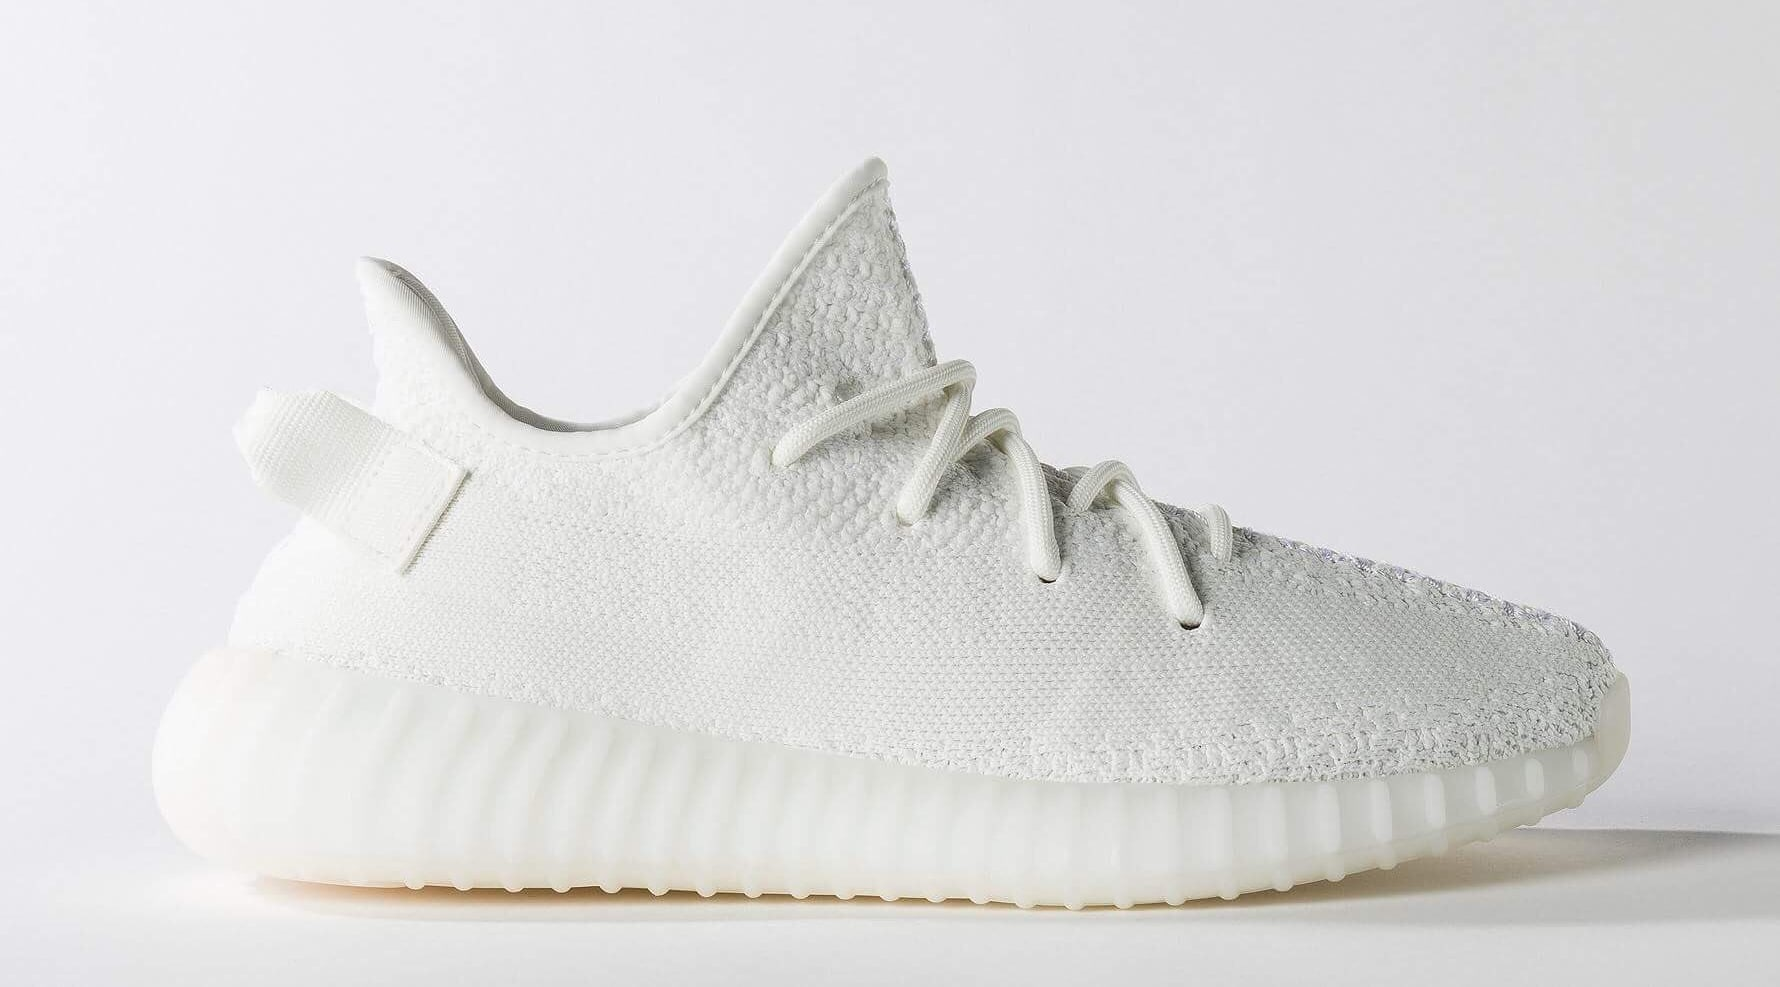 Cream White Adidas Yeezy Boost 350 V2s releasing on April 29